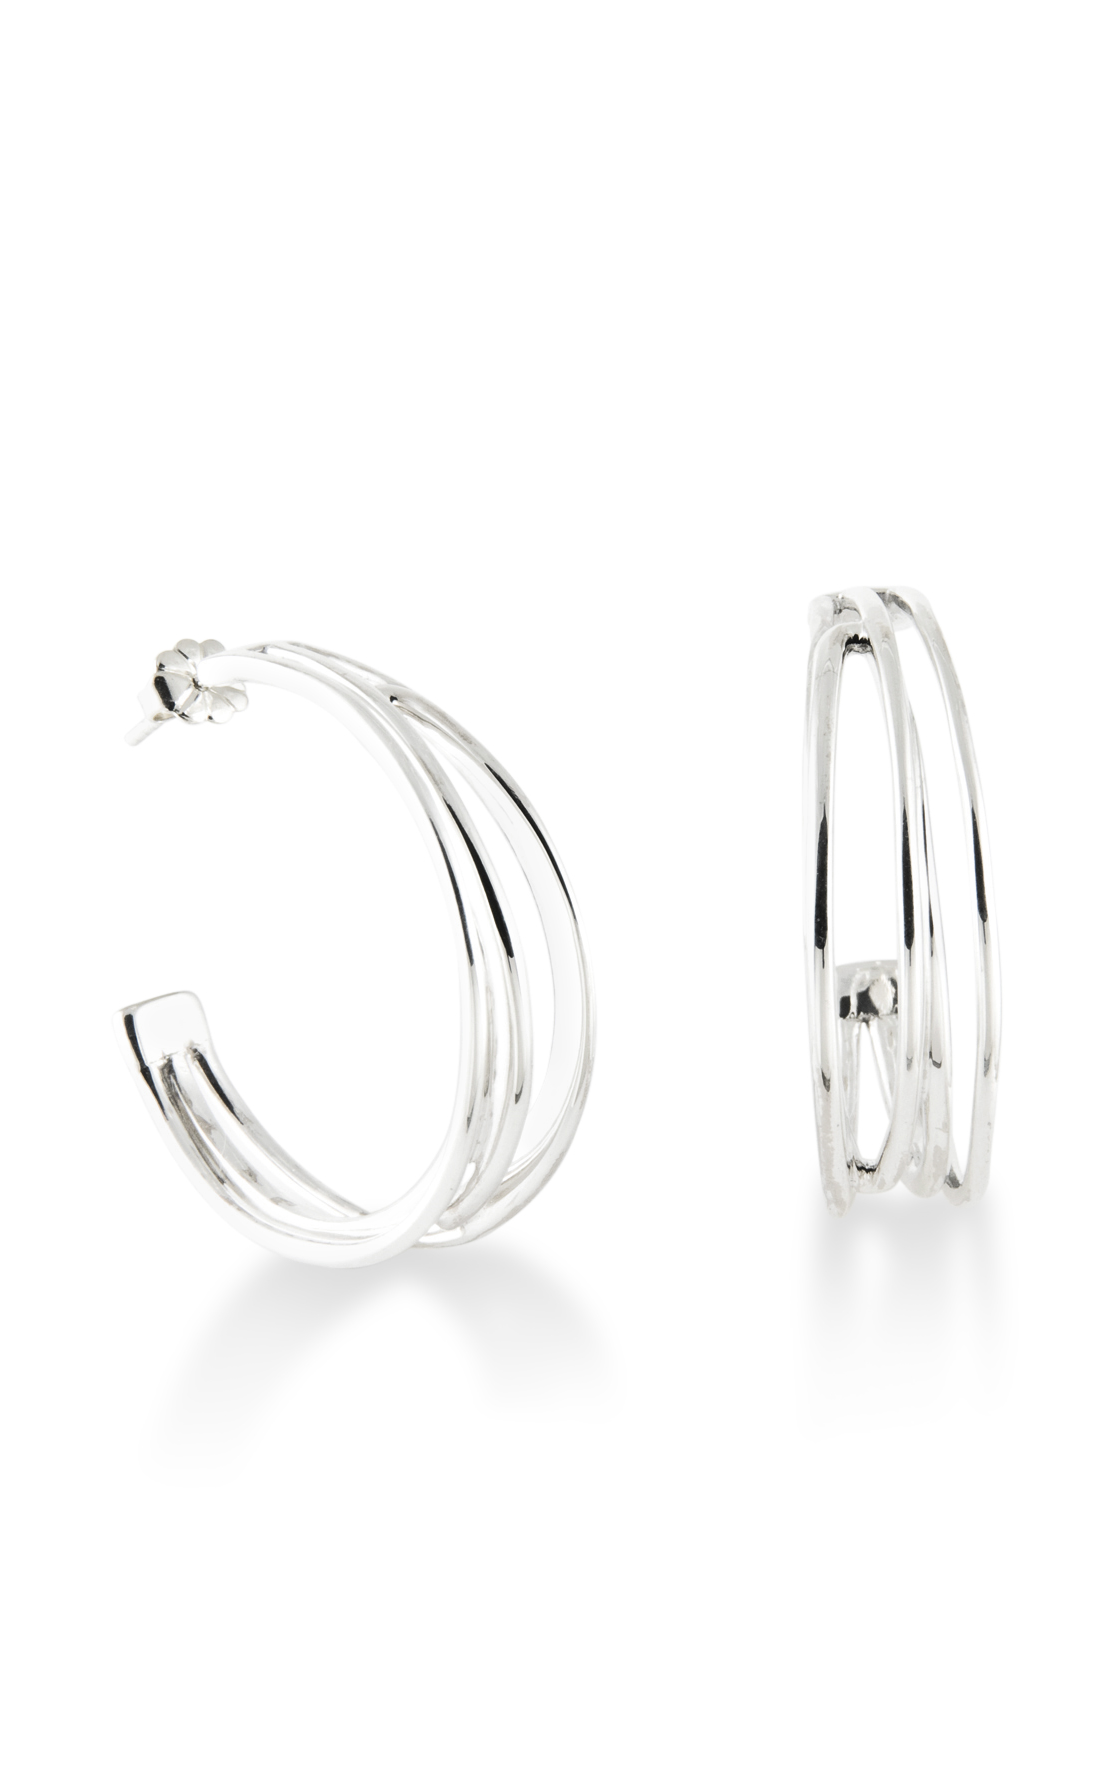 Zina Wired Earrings B1737 product image